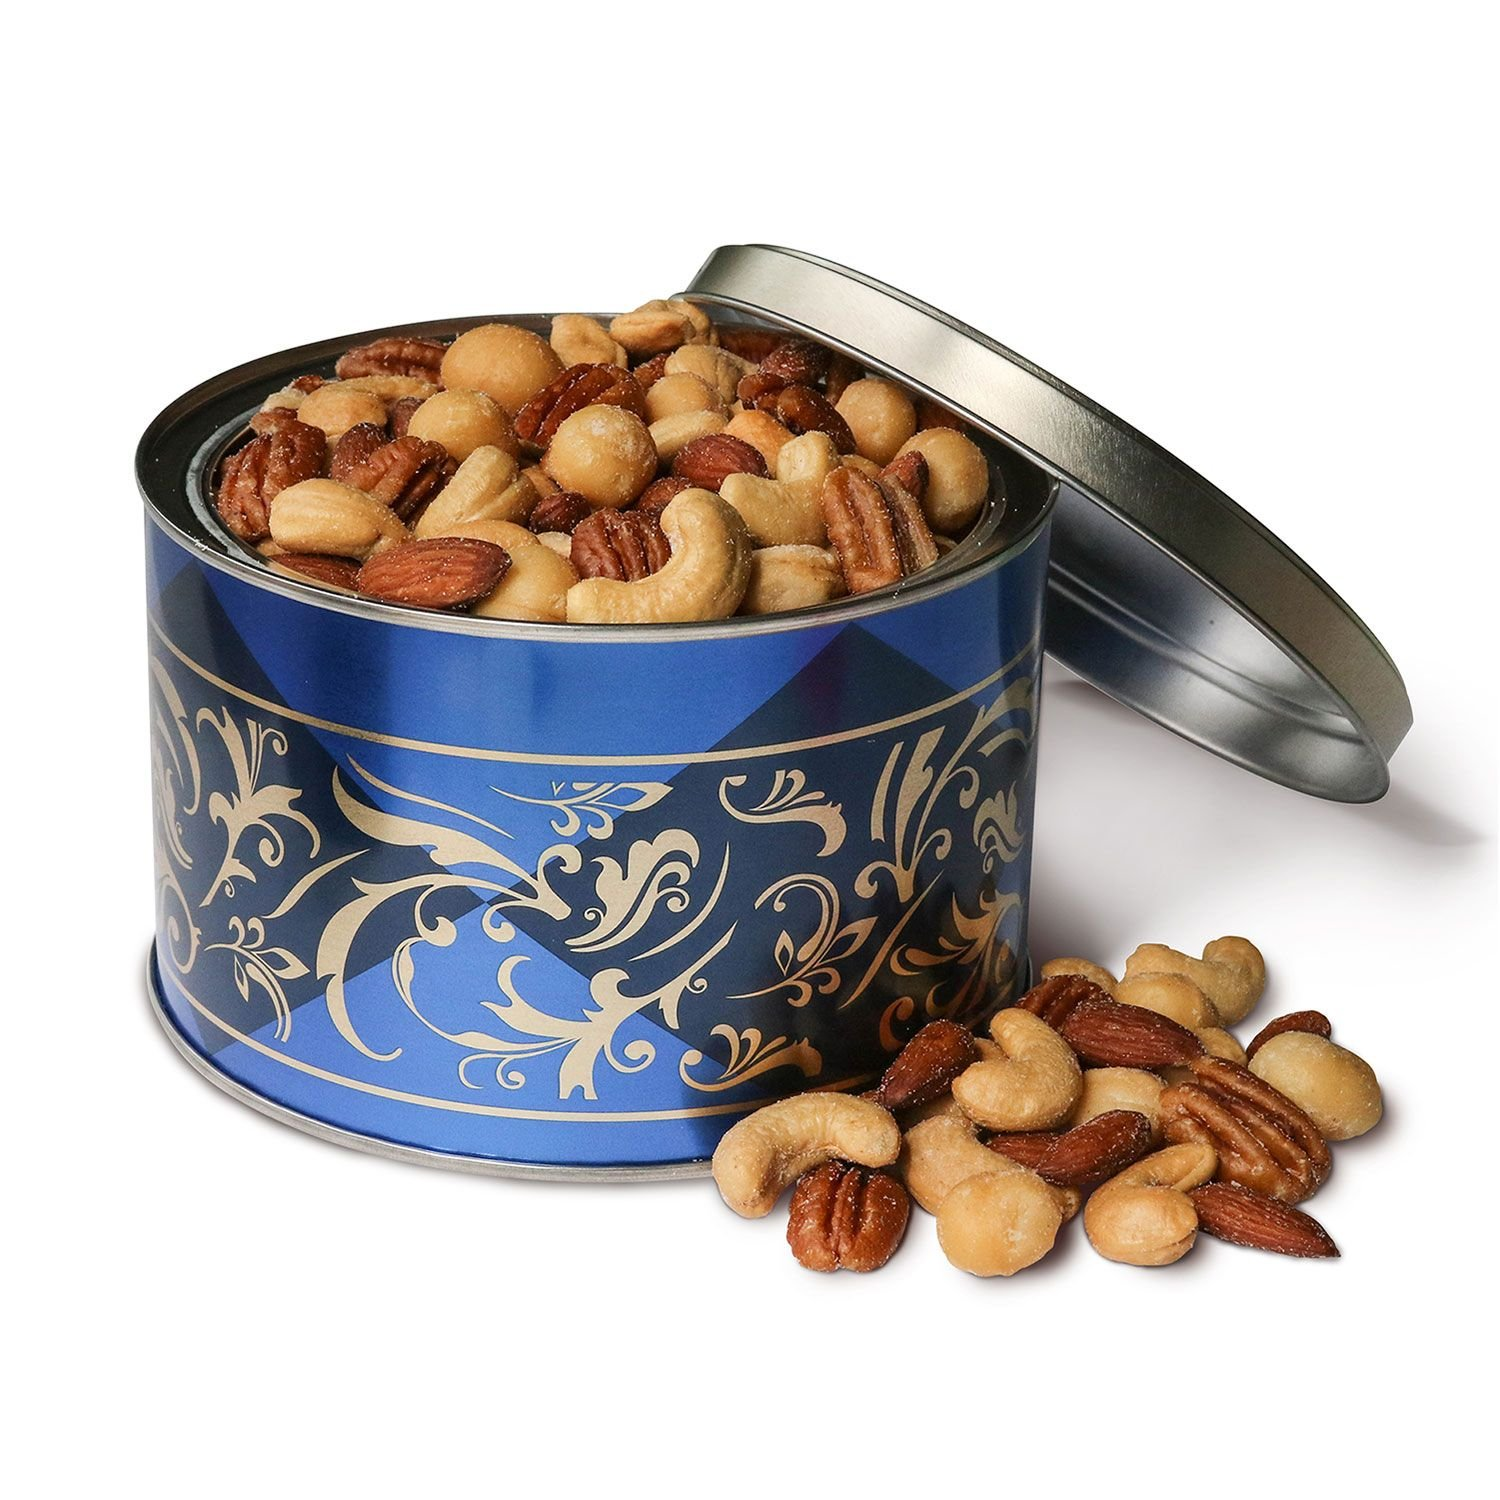 Golden Kernel Super Deluxe Mixed Nuts 30 ozs. by Golden Kernel (Image #1)